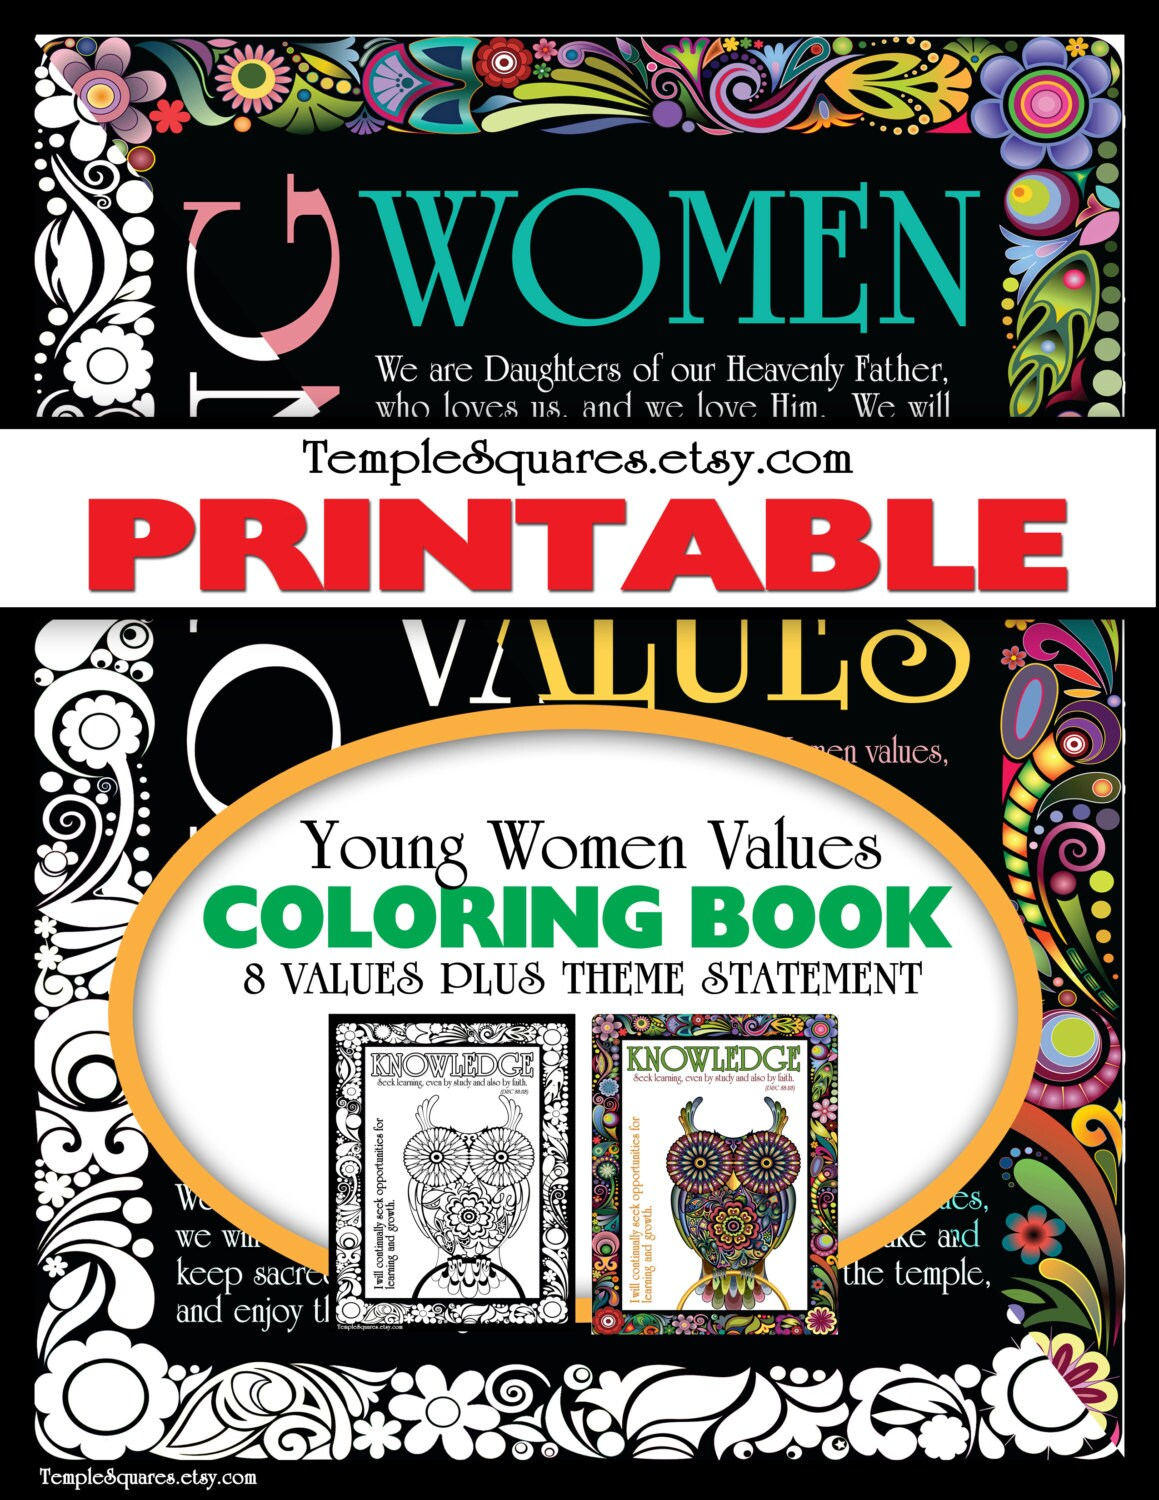 Printable Adult Coloring Book. LDS YW Young Women Values Theme ...